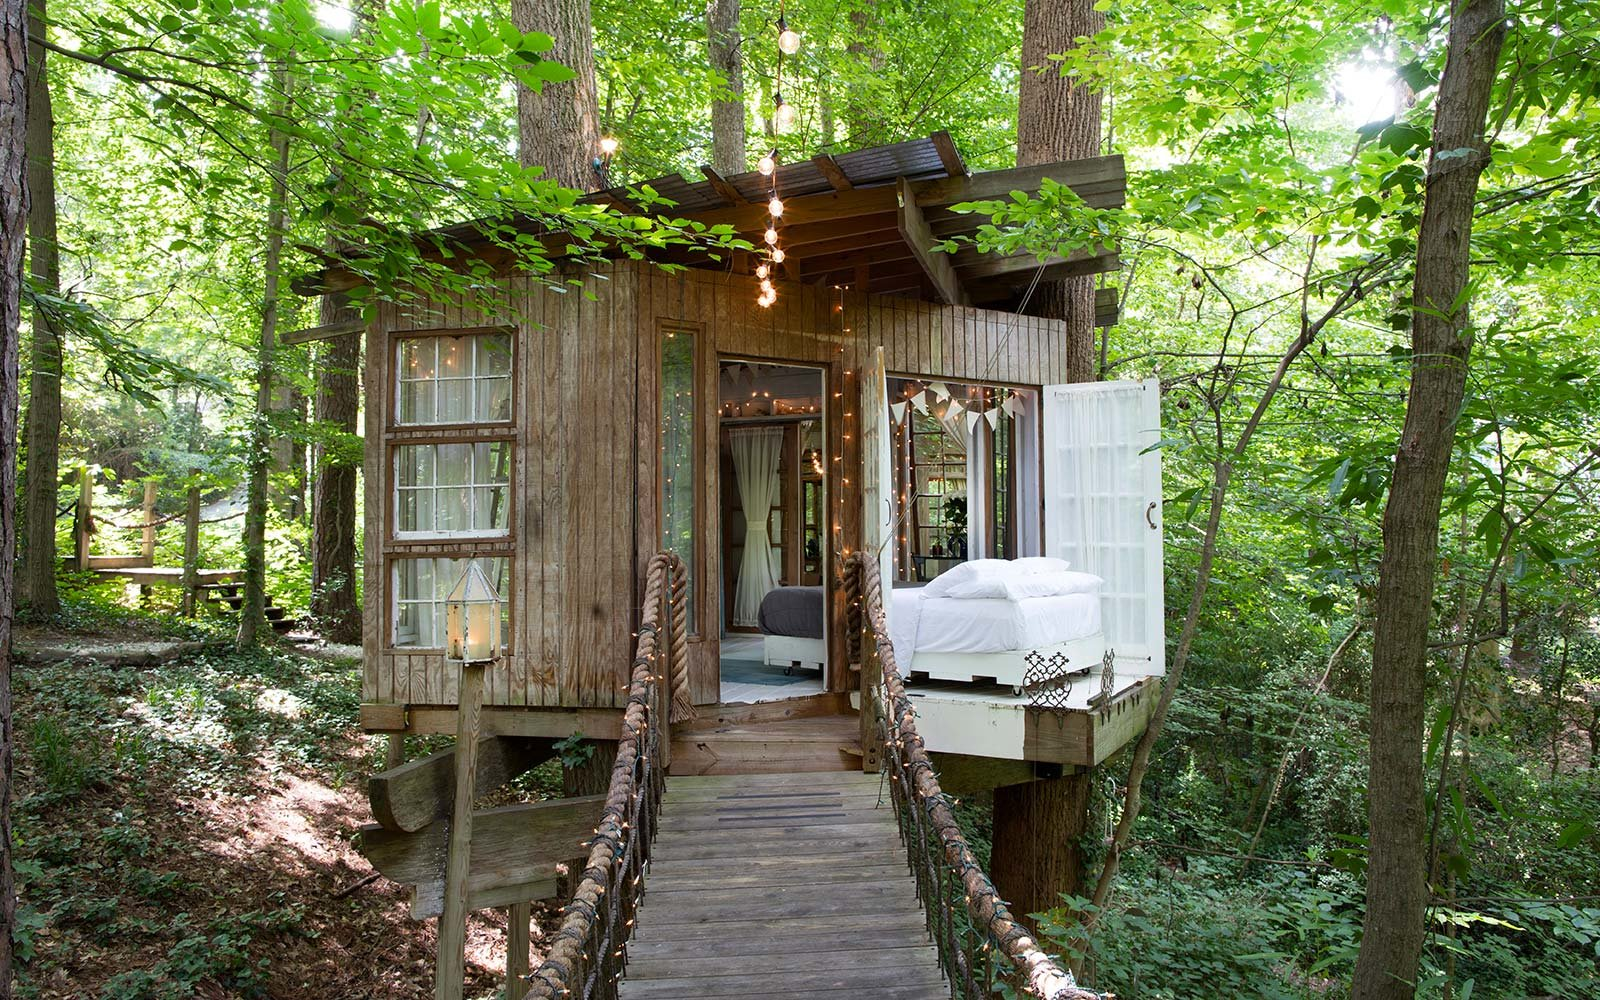 The Best Airbnbs to Rent for Fall Foliage Views  Travel